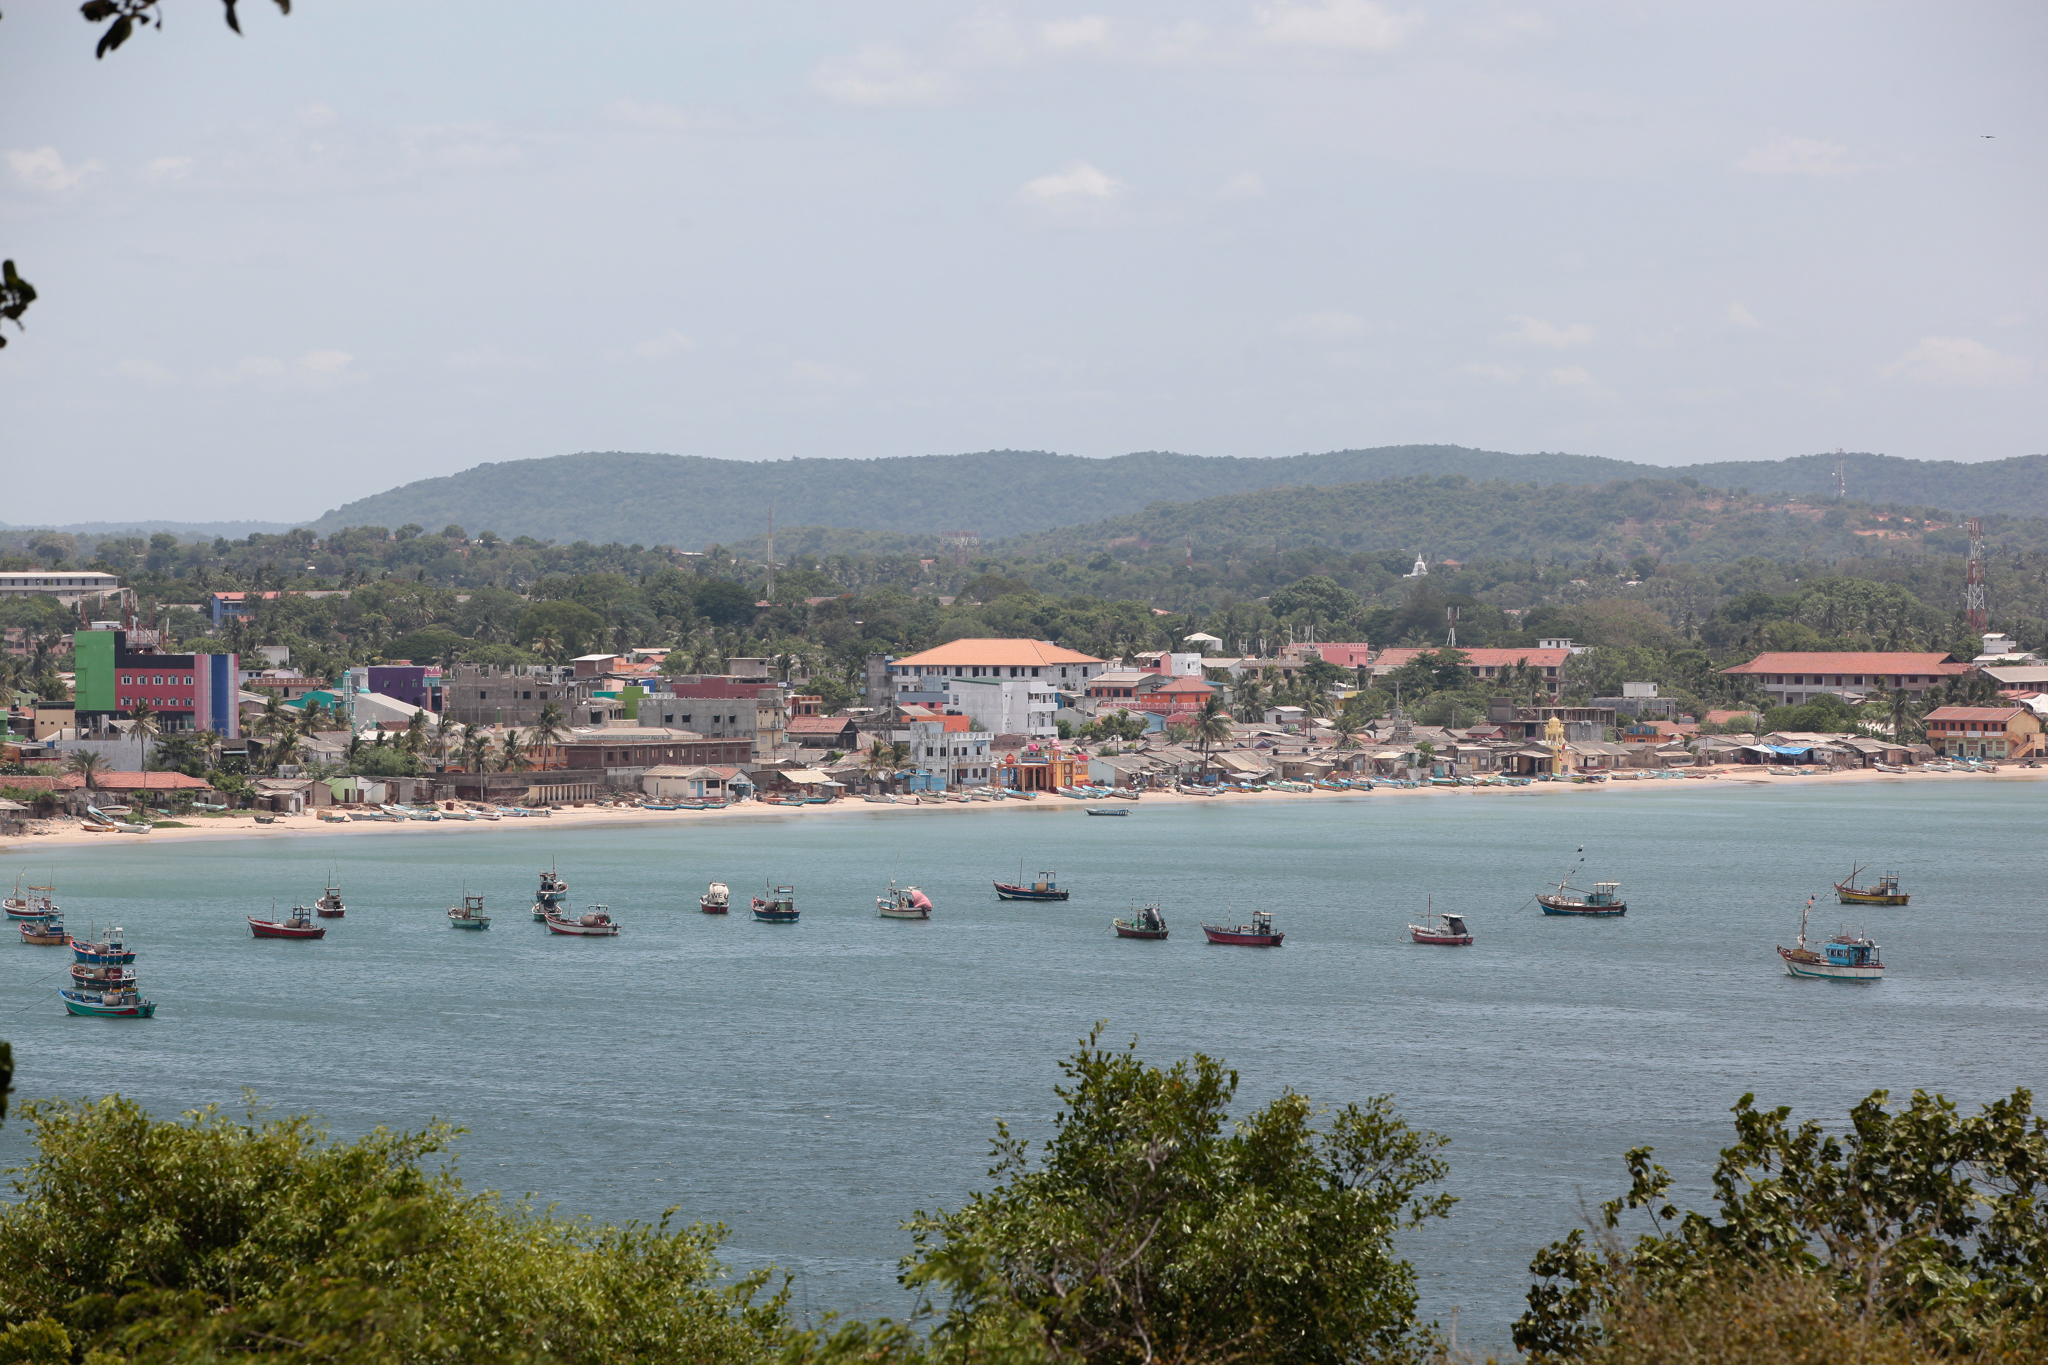 Trincomalee is a historical site in Sri Lanka